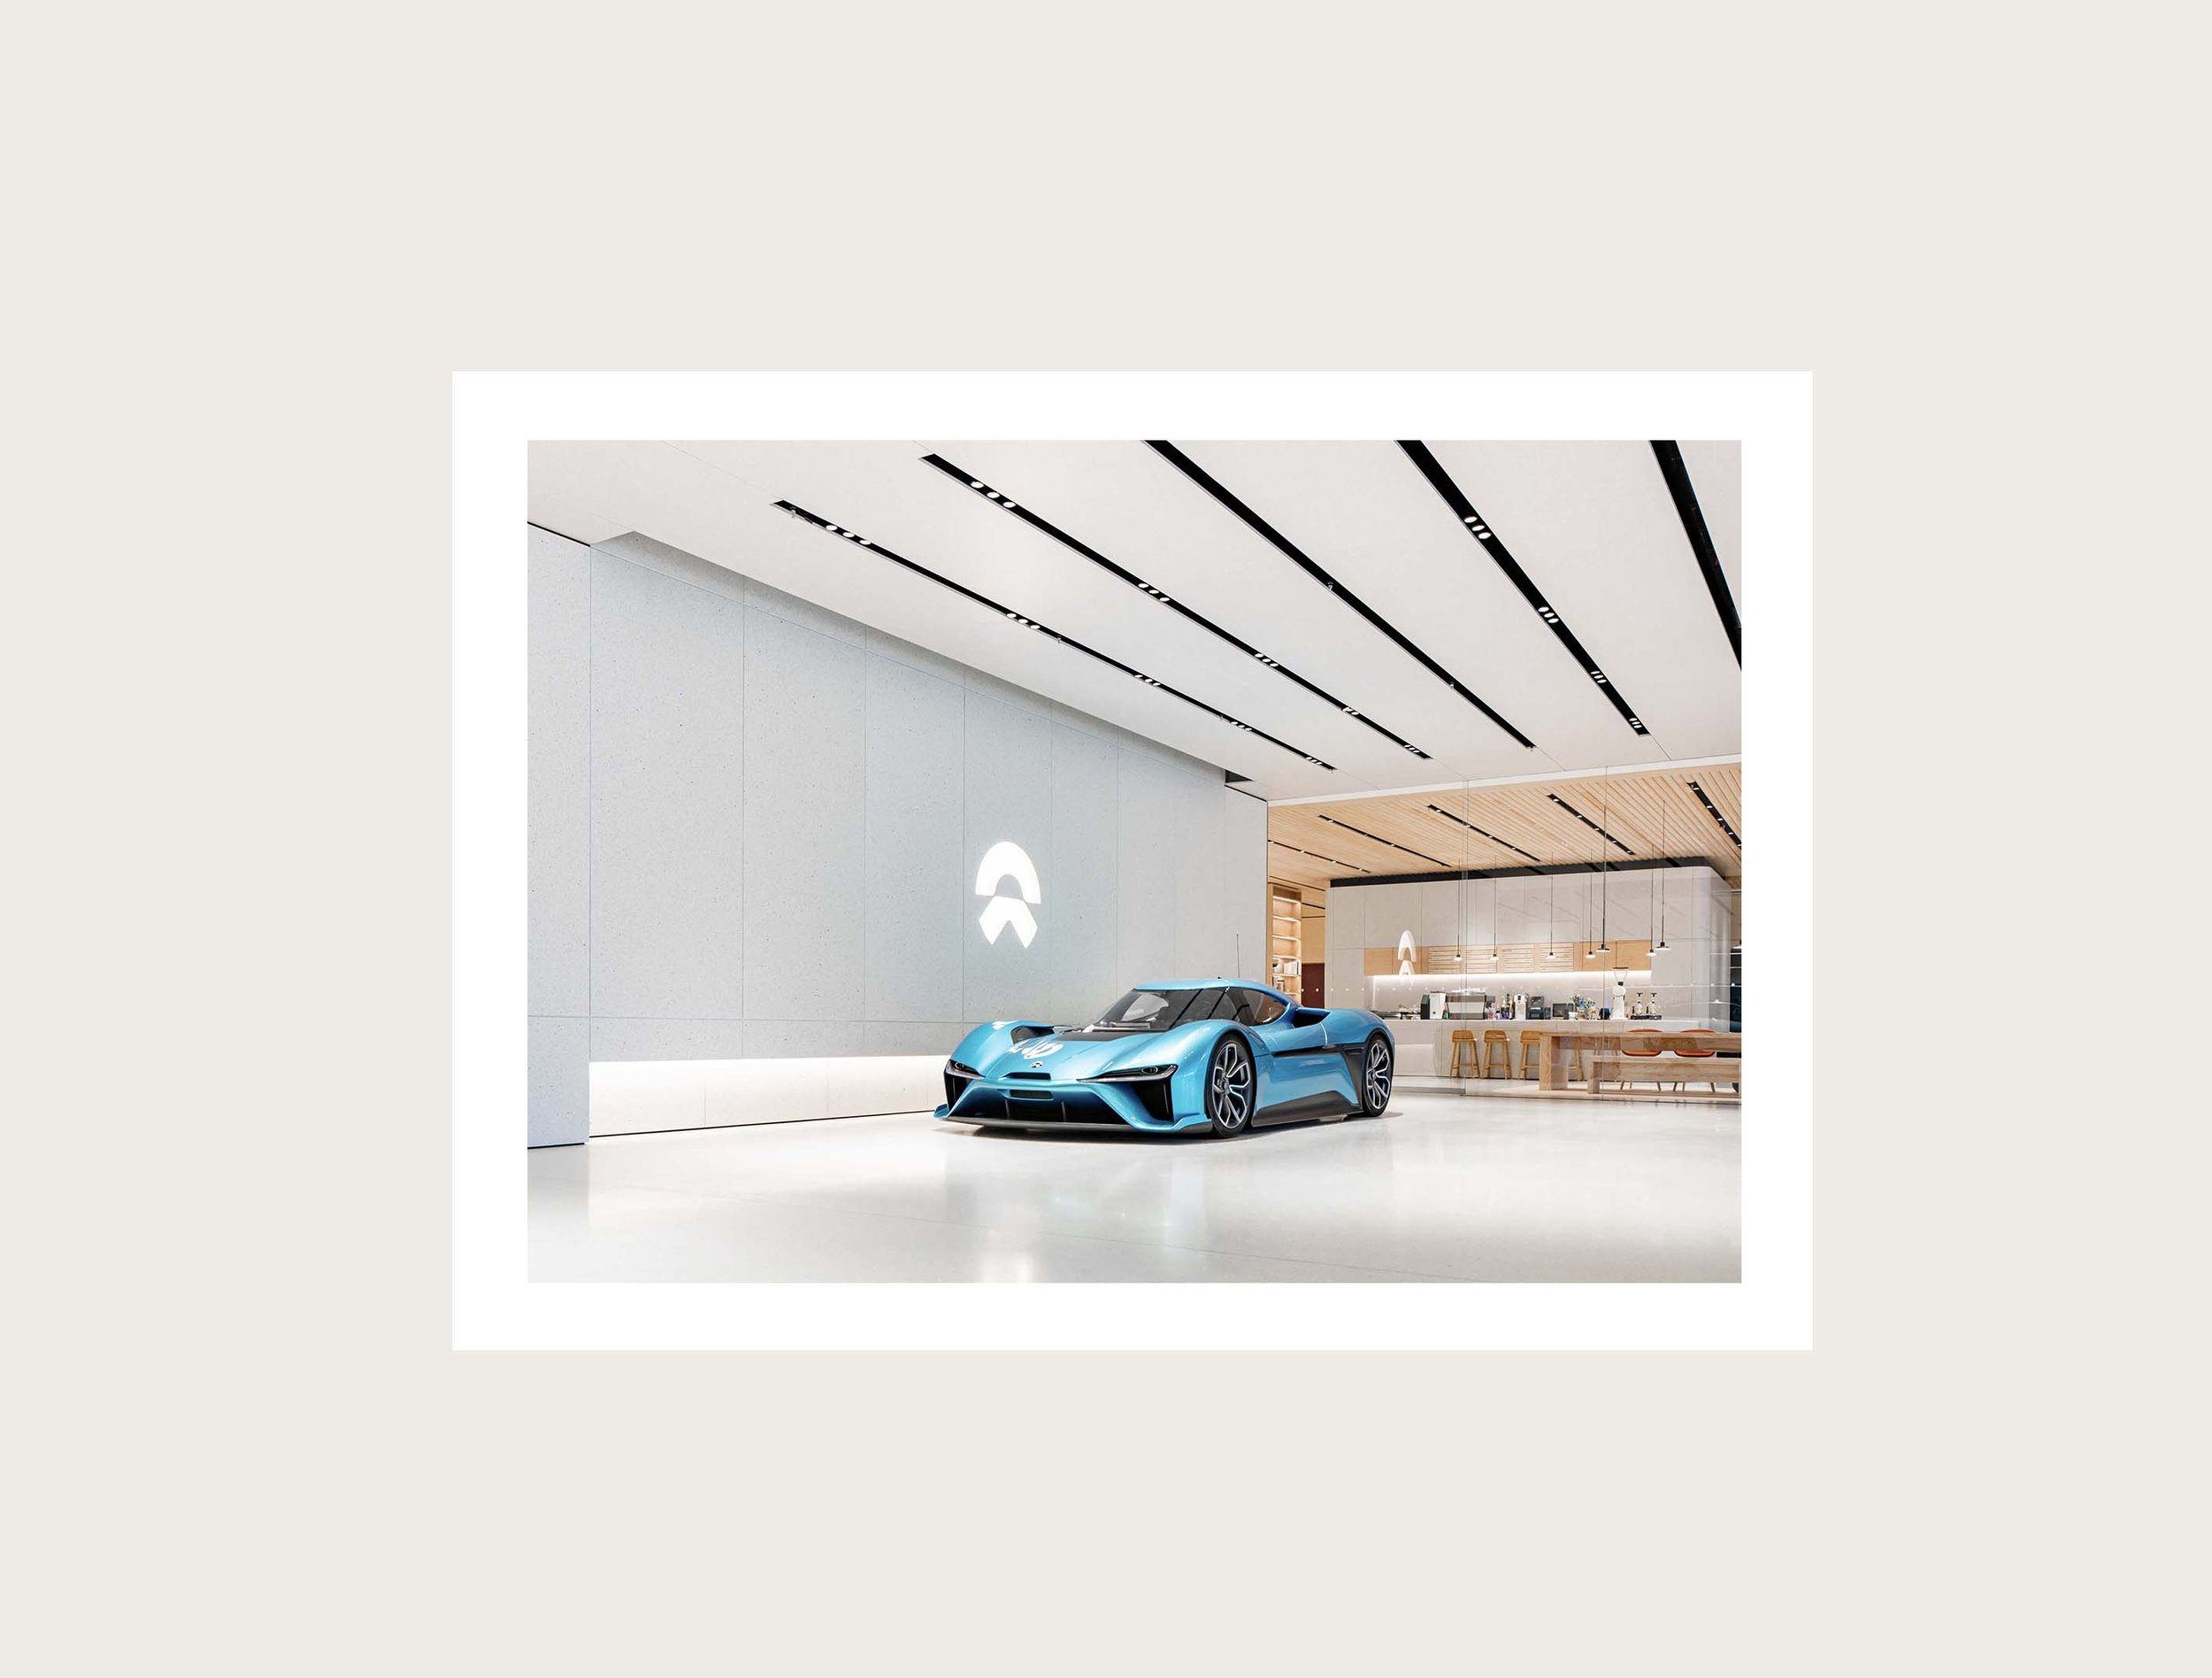 raams-architecture-design-studio-arquitectura-diseño-house-electric-car-coche-electrico-showroom-retail-tianjin-china-00.jpg